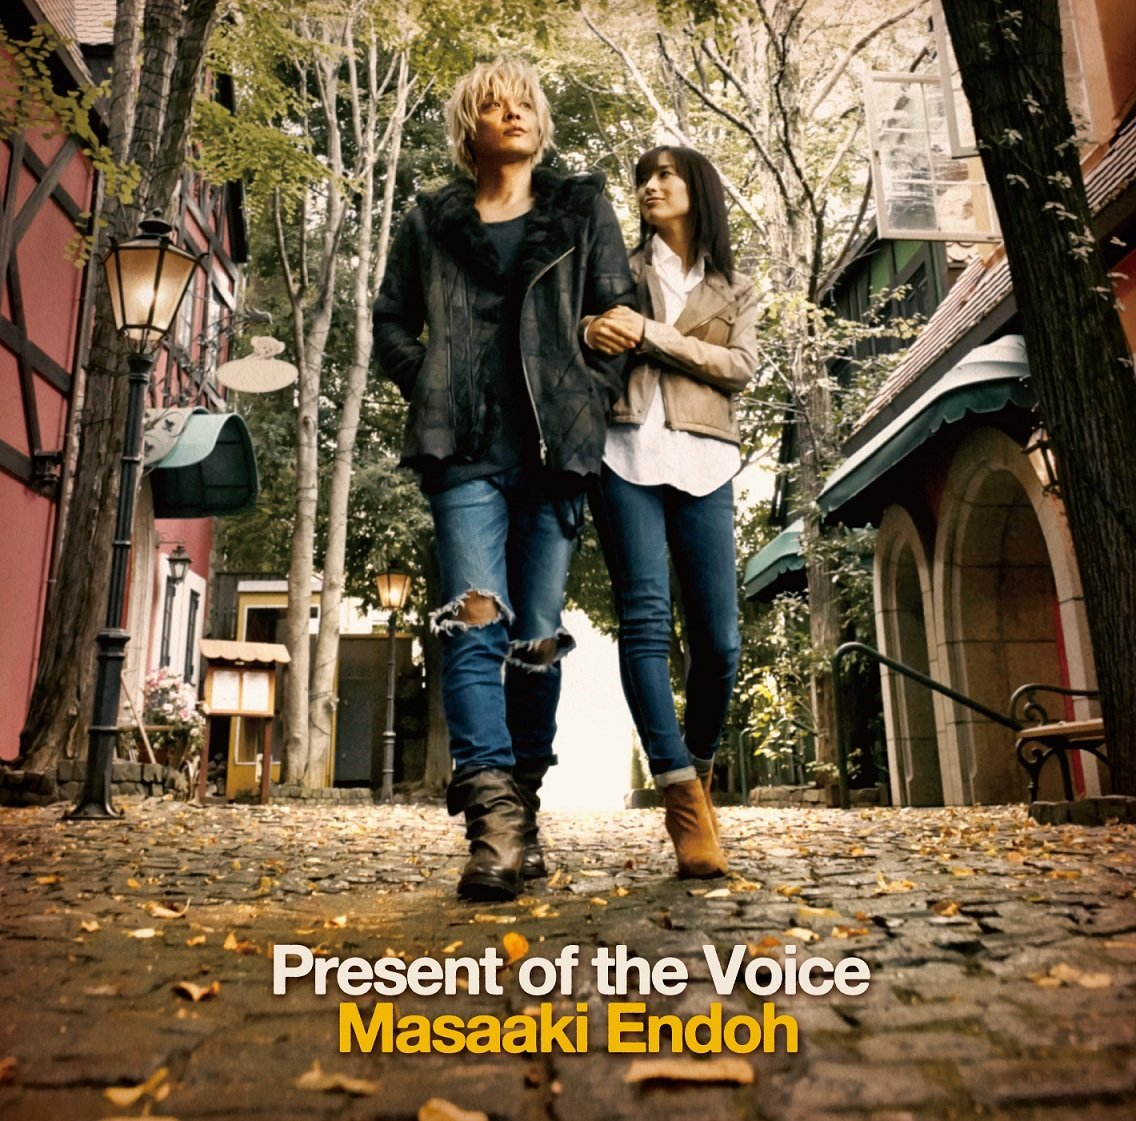 Present of the Voice